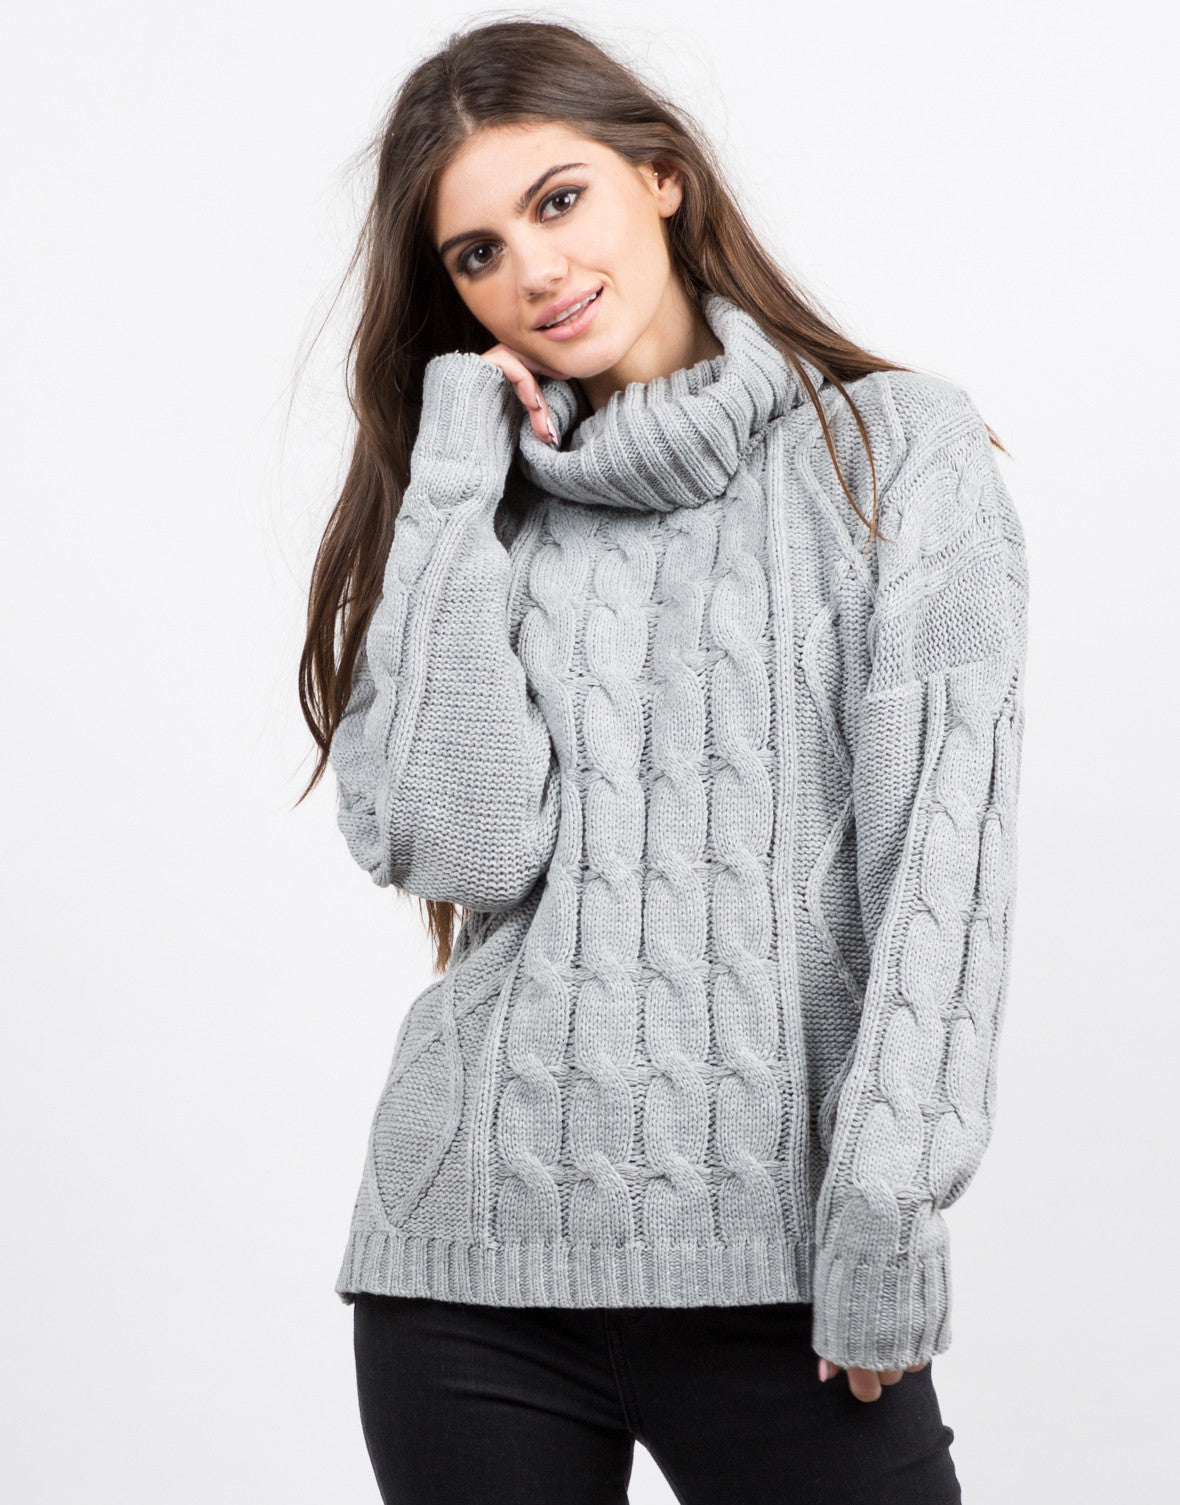 Turtleneck Chunky Knit Sweater - Cowl Neck Sweater - Thick ...